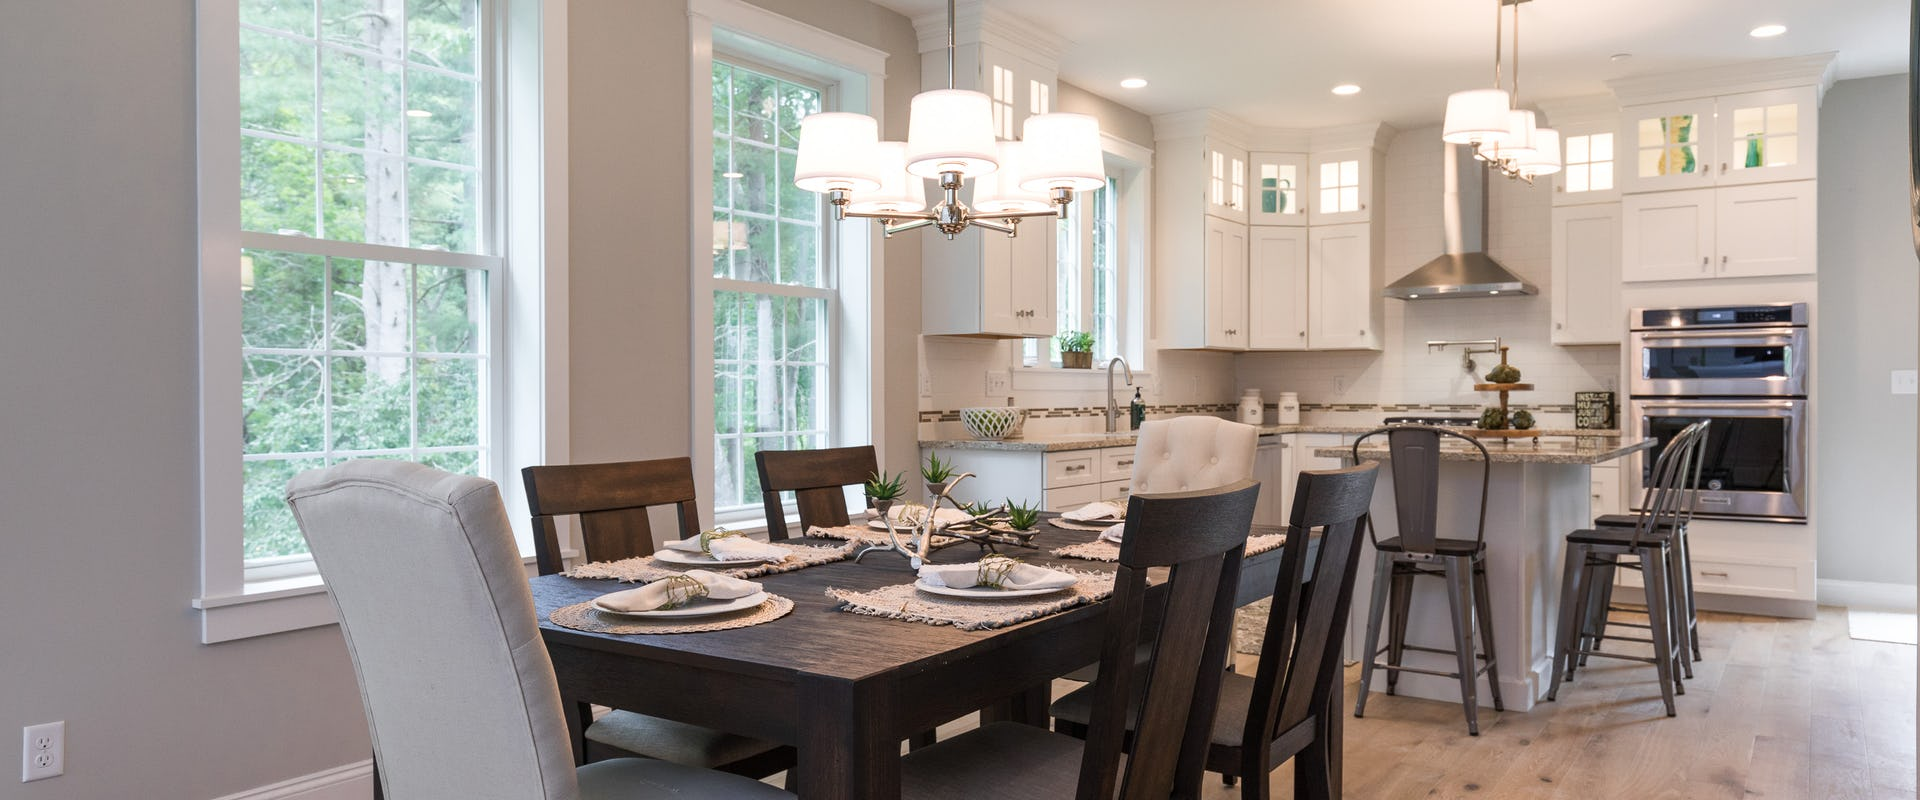 open concept kitchen and dining in new home